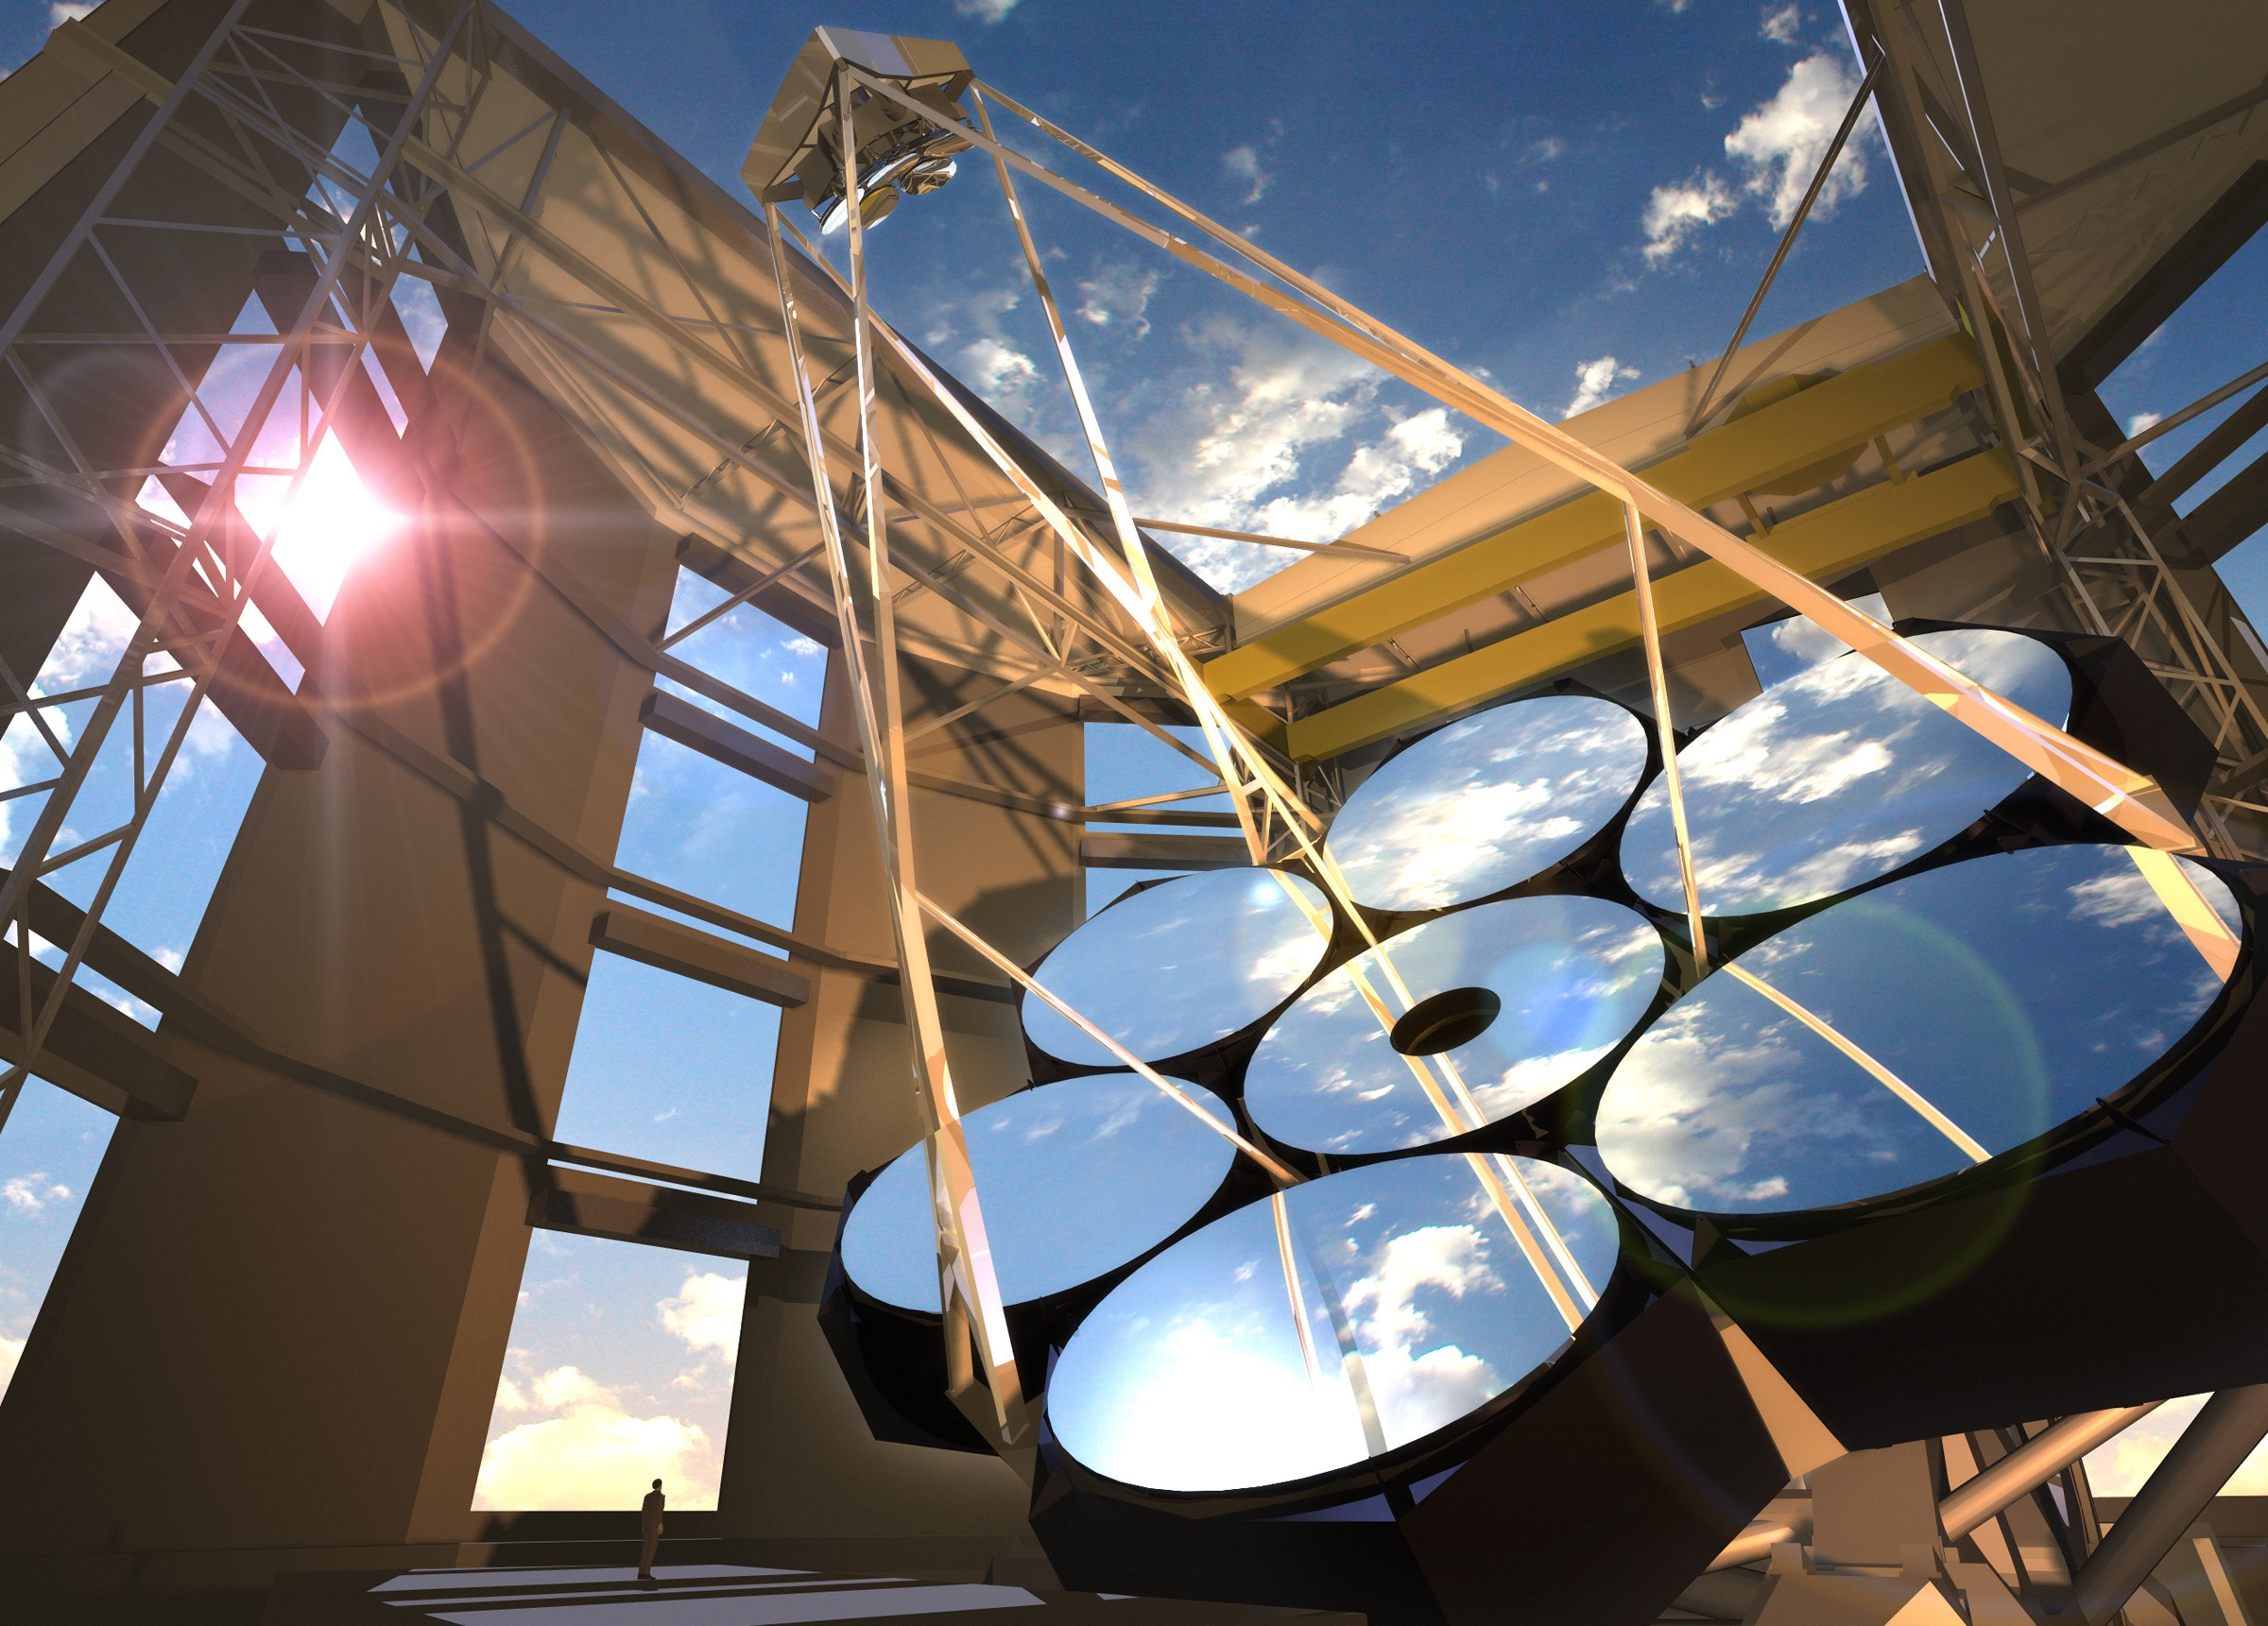 Artist's rendering of the Giant Magellan Telescope